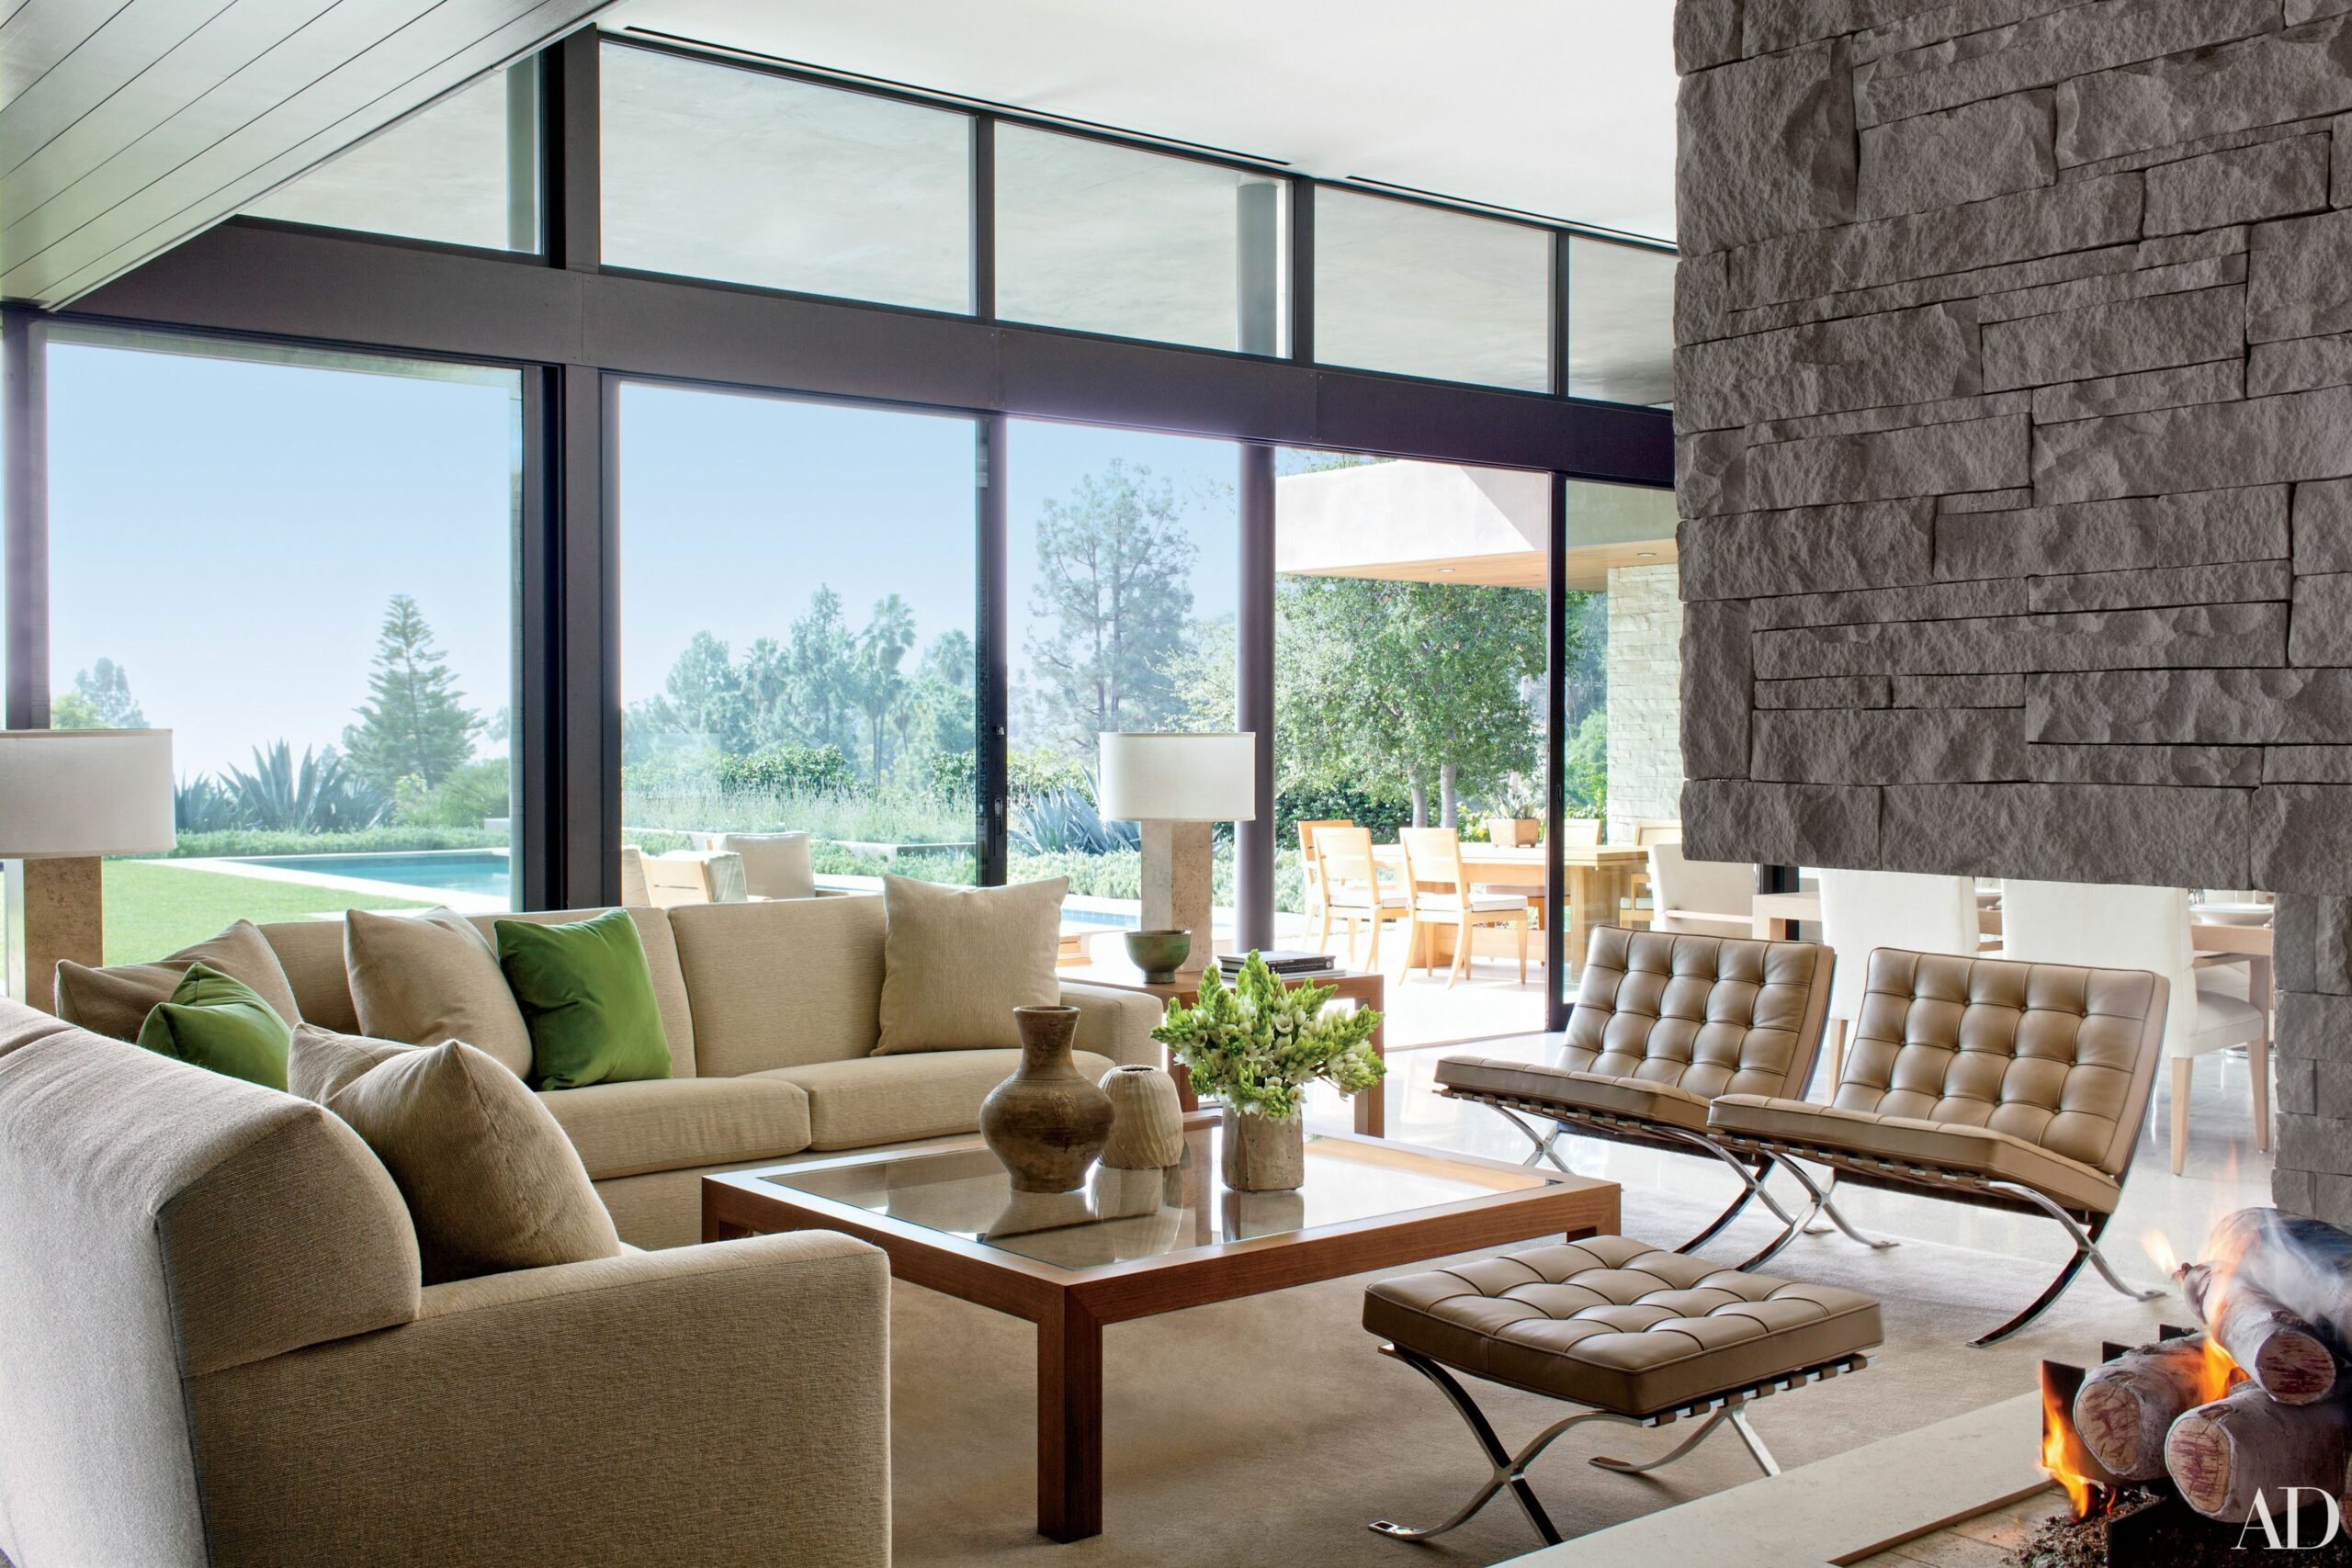 8 Stylish Homes with Modern Interior Design   Architectural Digest - inspiration house near me